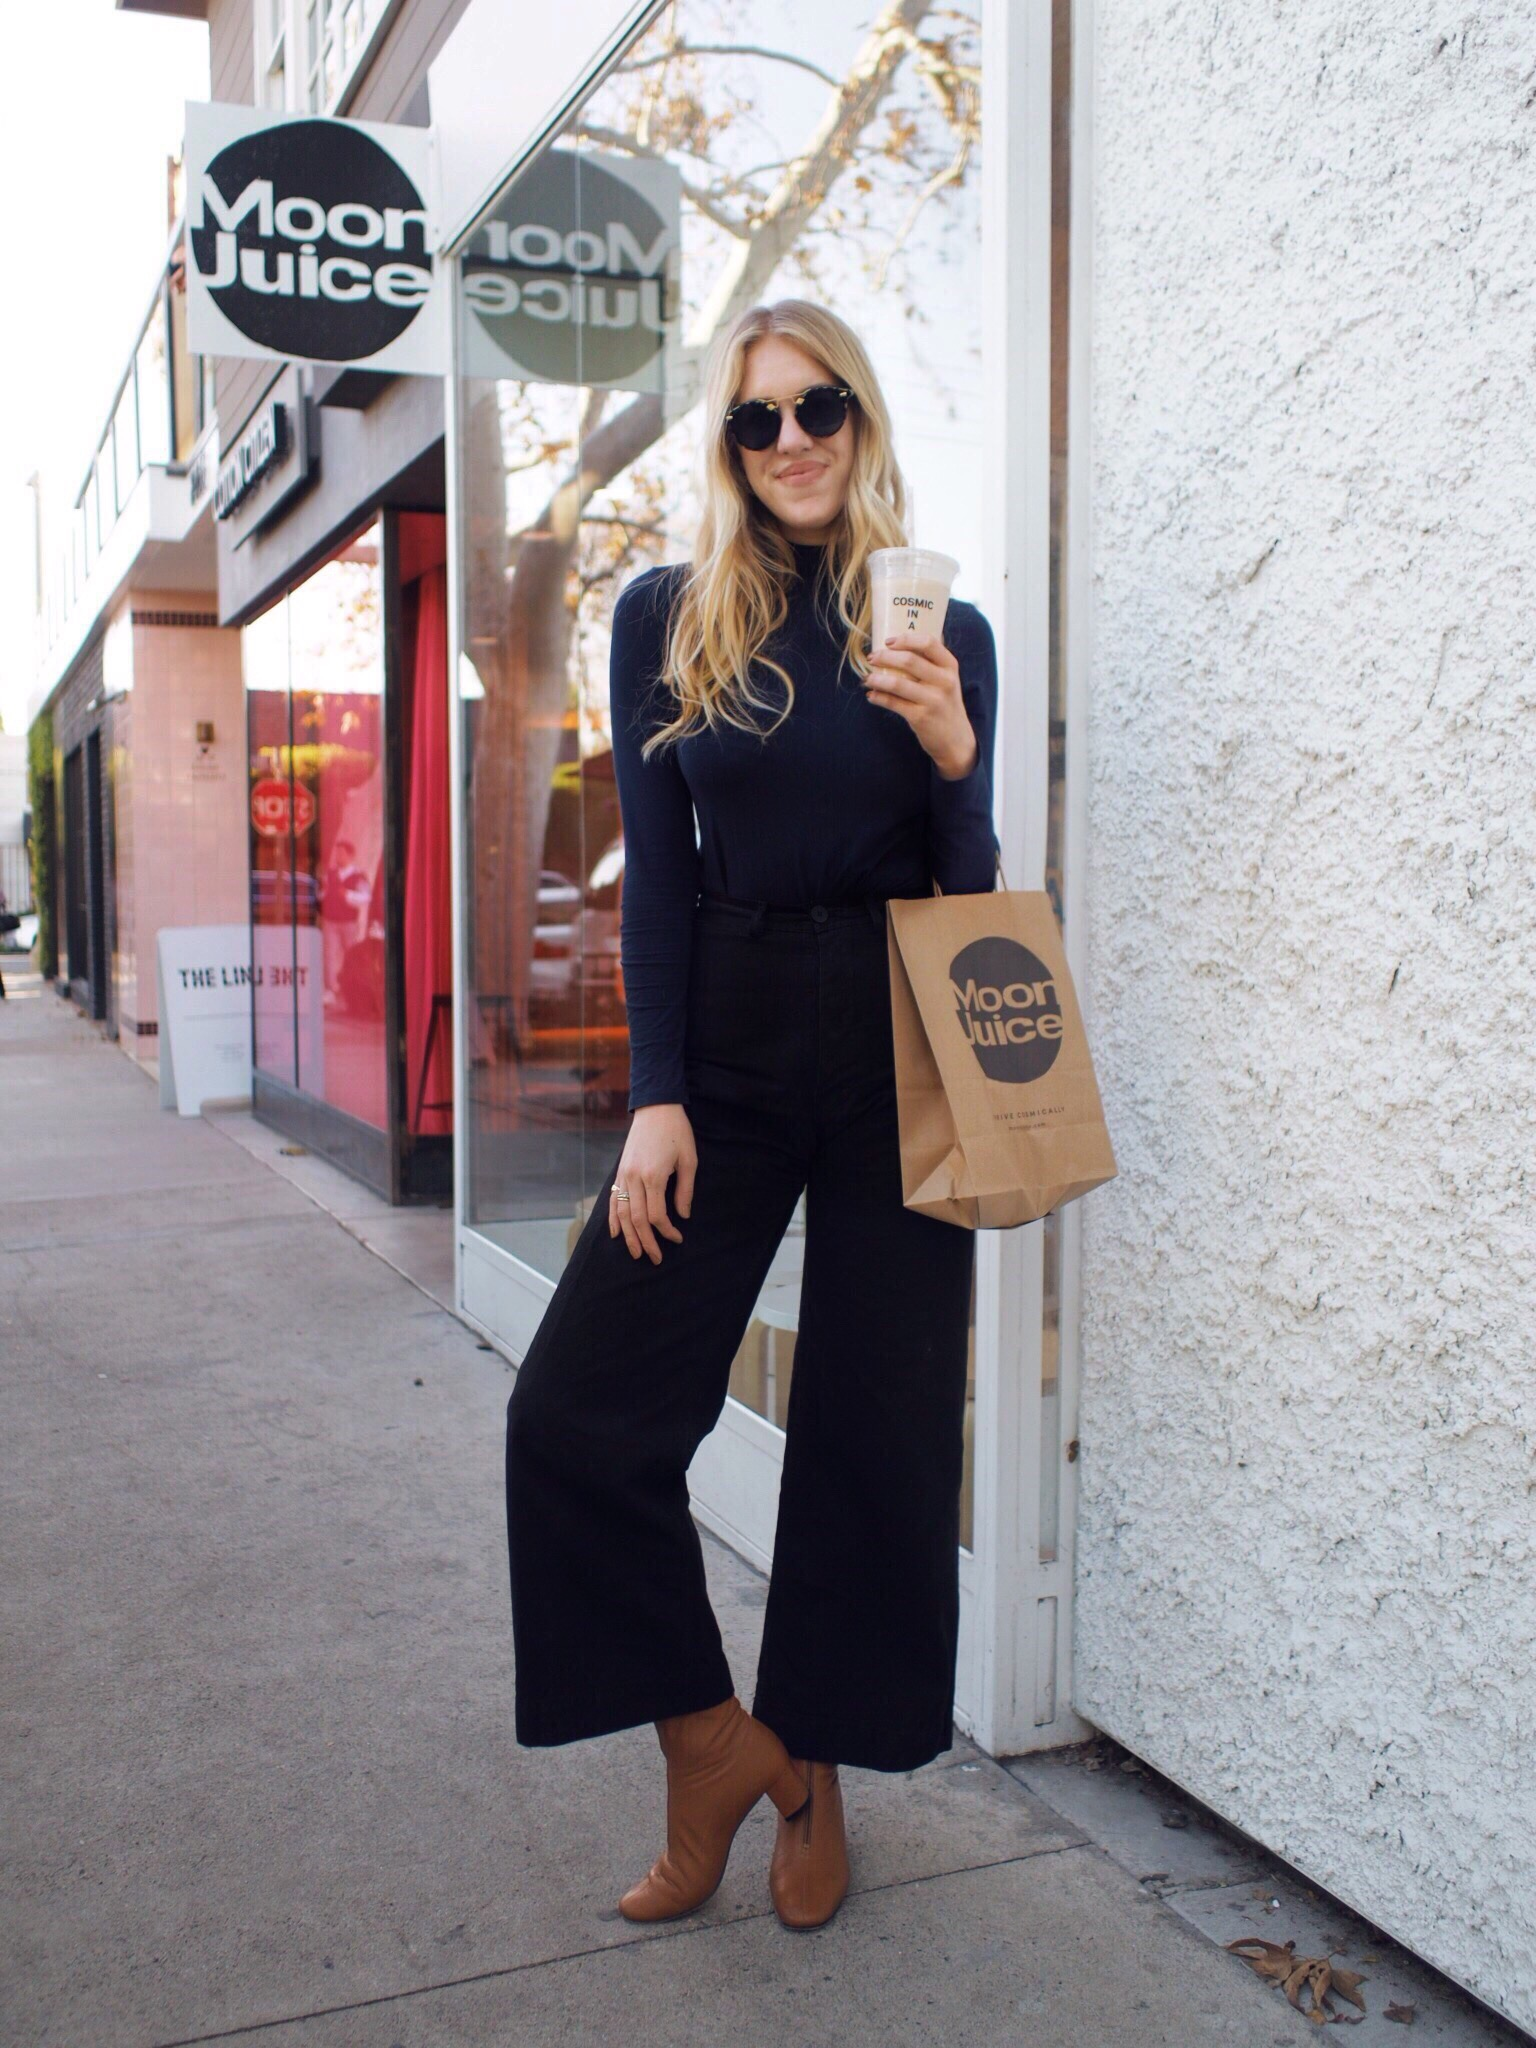 WHY YOU NEED TO VISIT MOON JUICE IN LOS ANGELES Taylr Anne